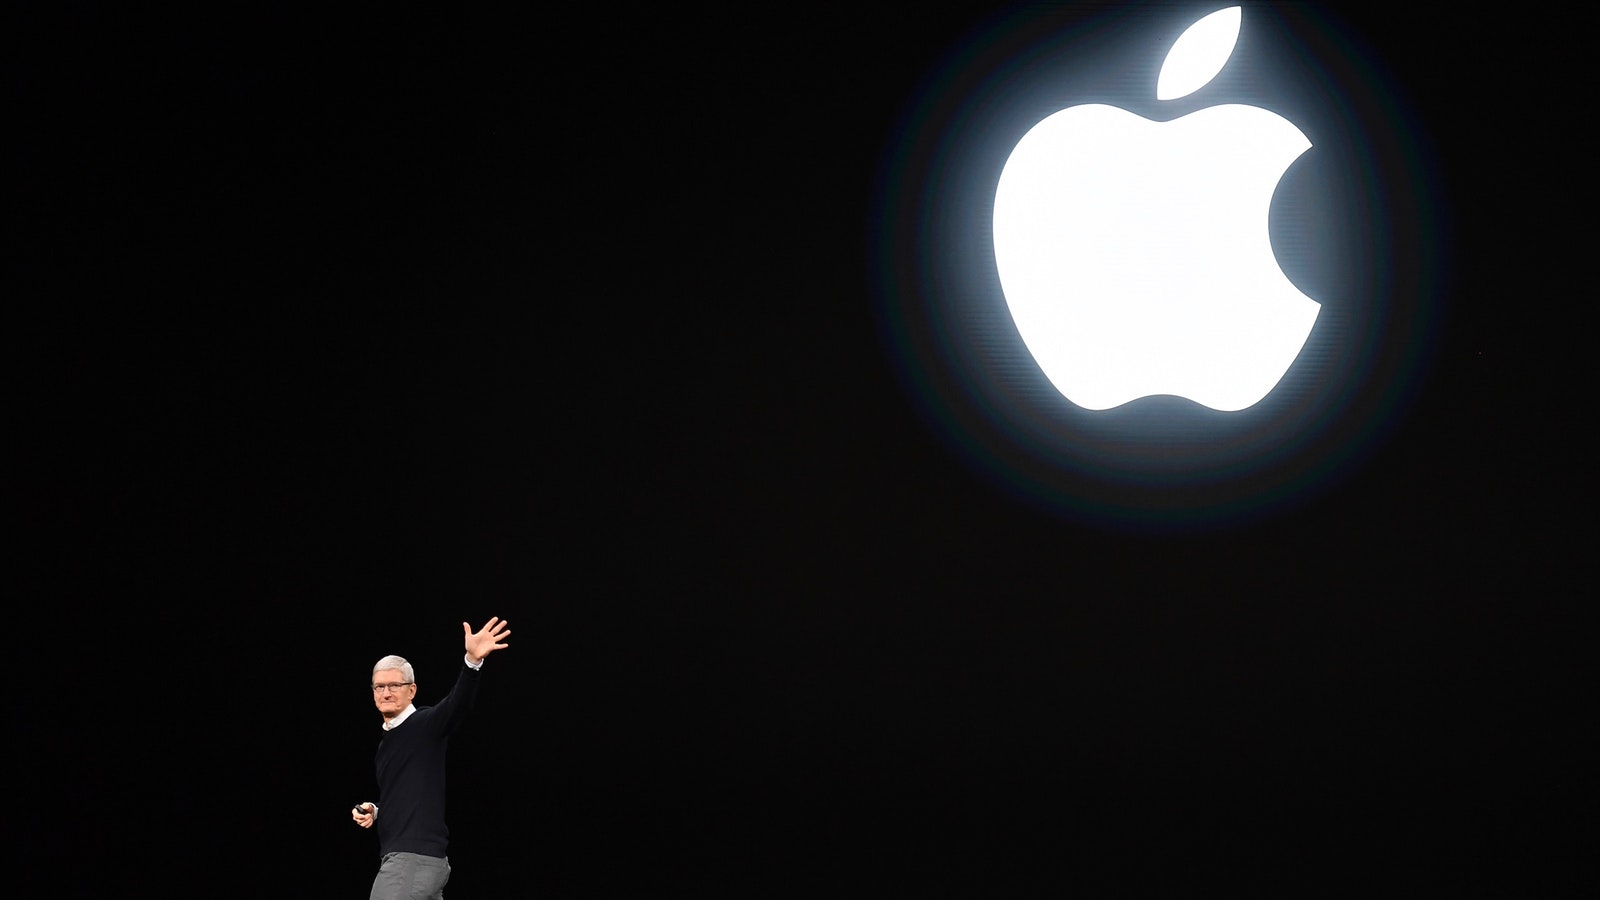 Apple CEO Tim Cook on stage at Apple's news and video presentation last month. Photo by Bloomberg.